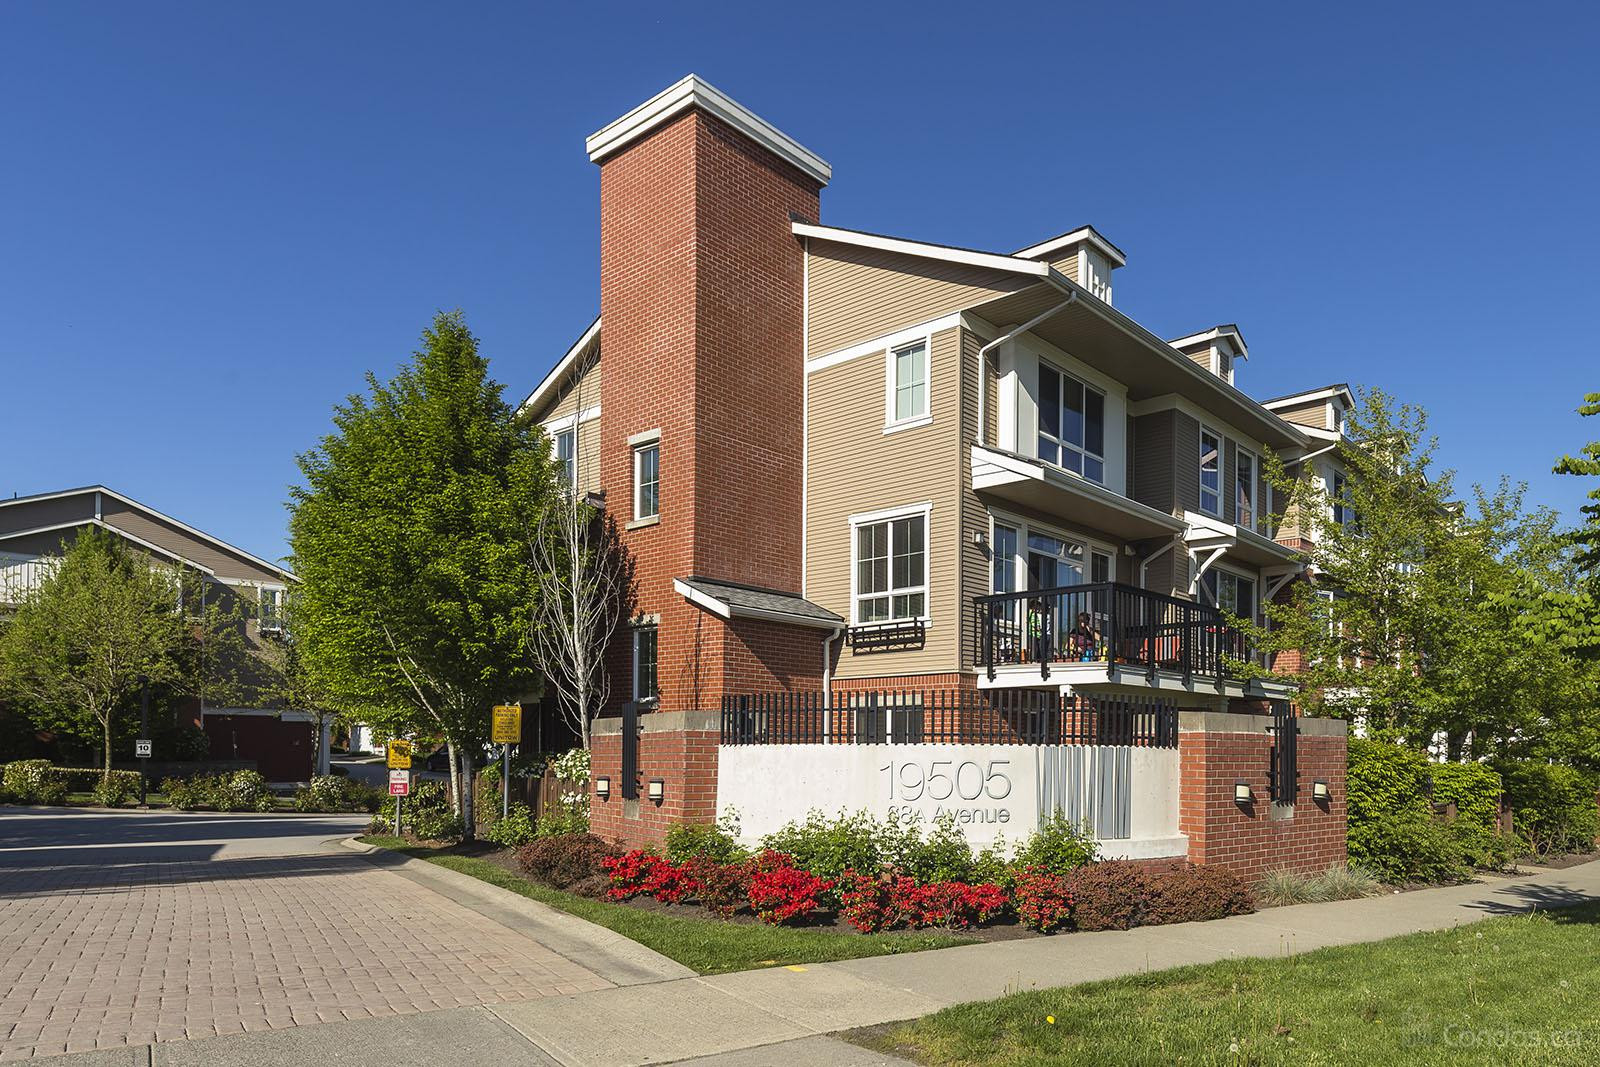 Clayton Rise at 19505 68a Ave, Surrey 1